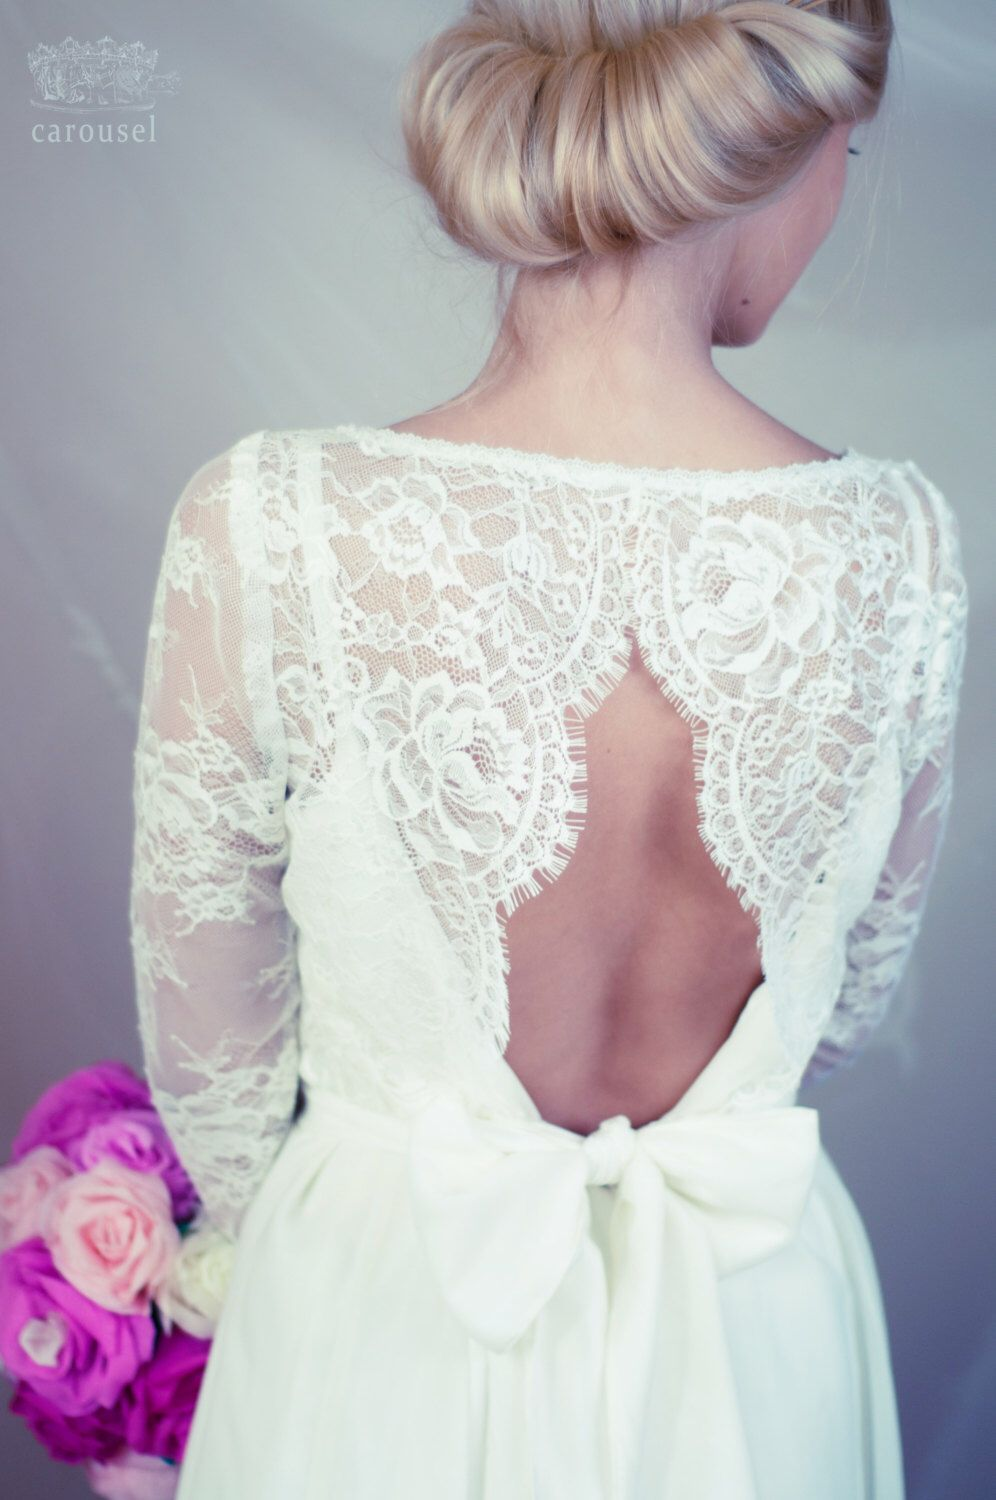 Lace Wedding Top Separate Amelie By Carouselfashion On Etsy Https Www